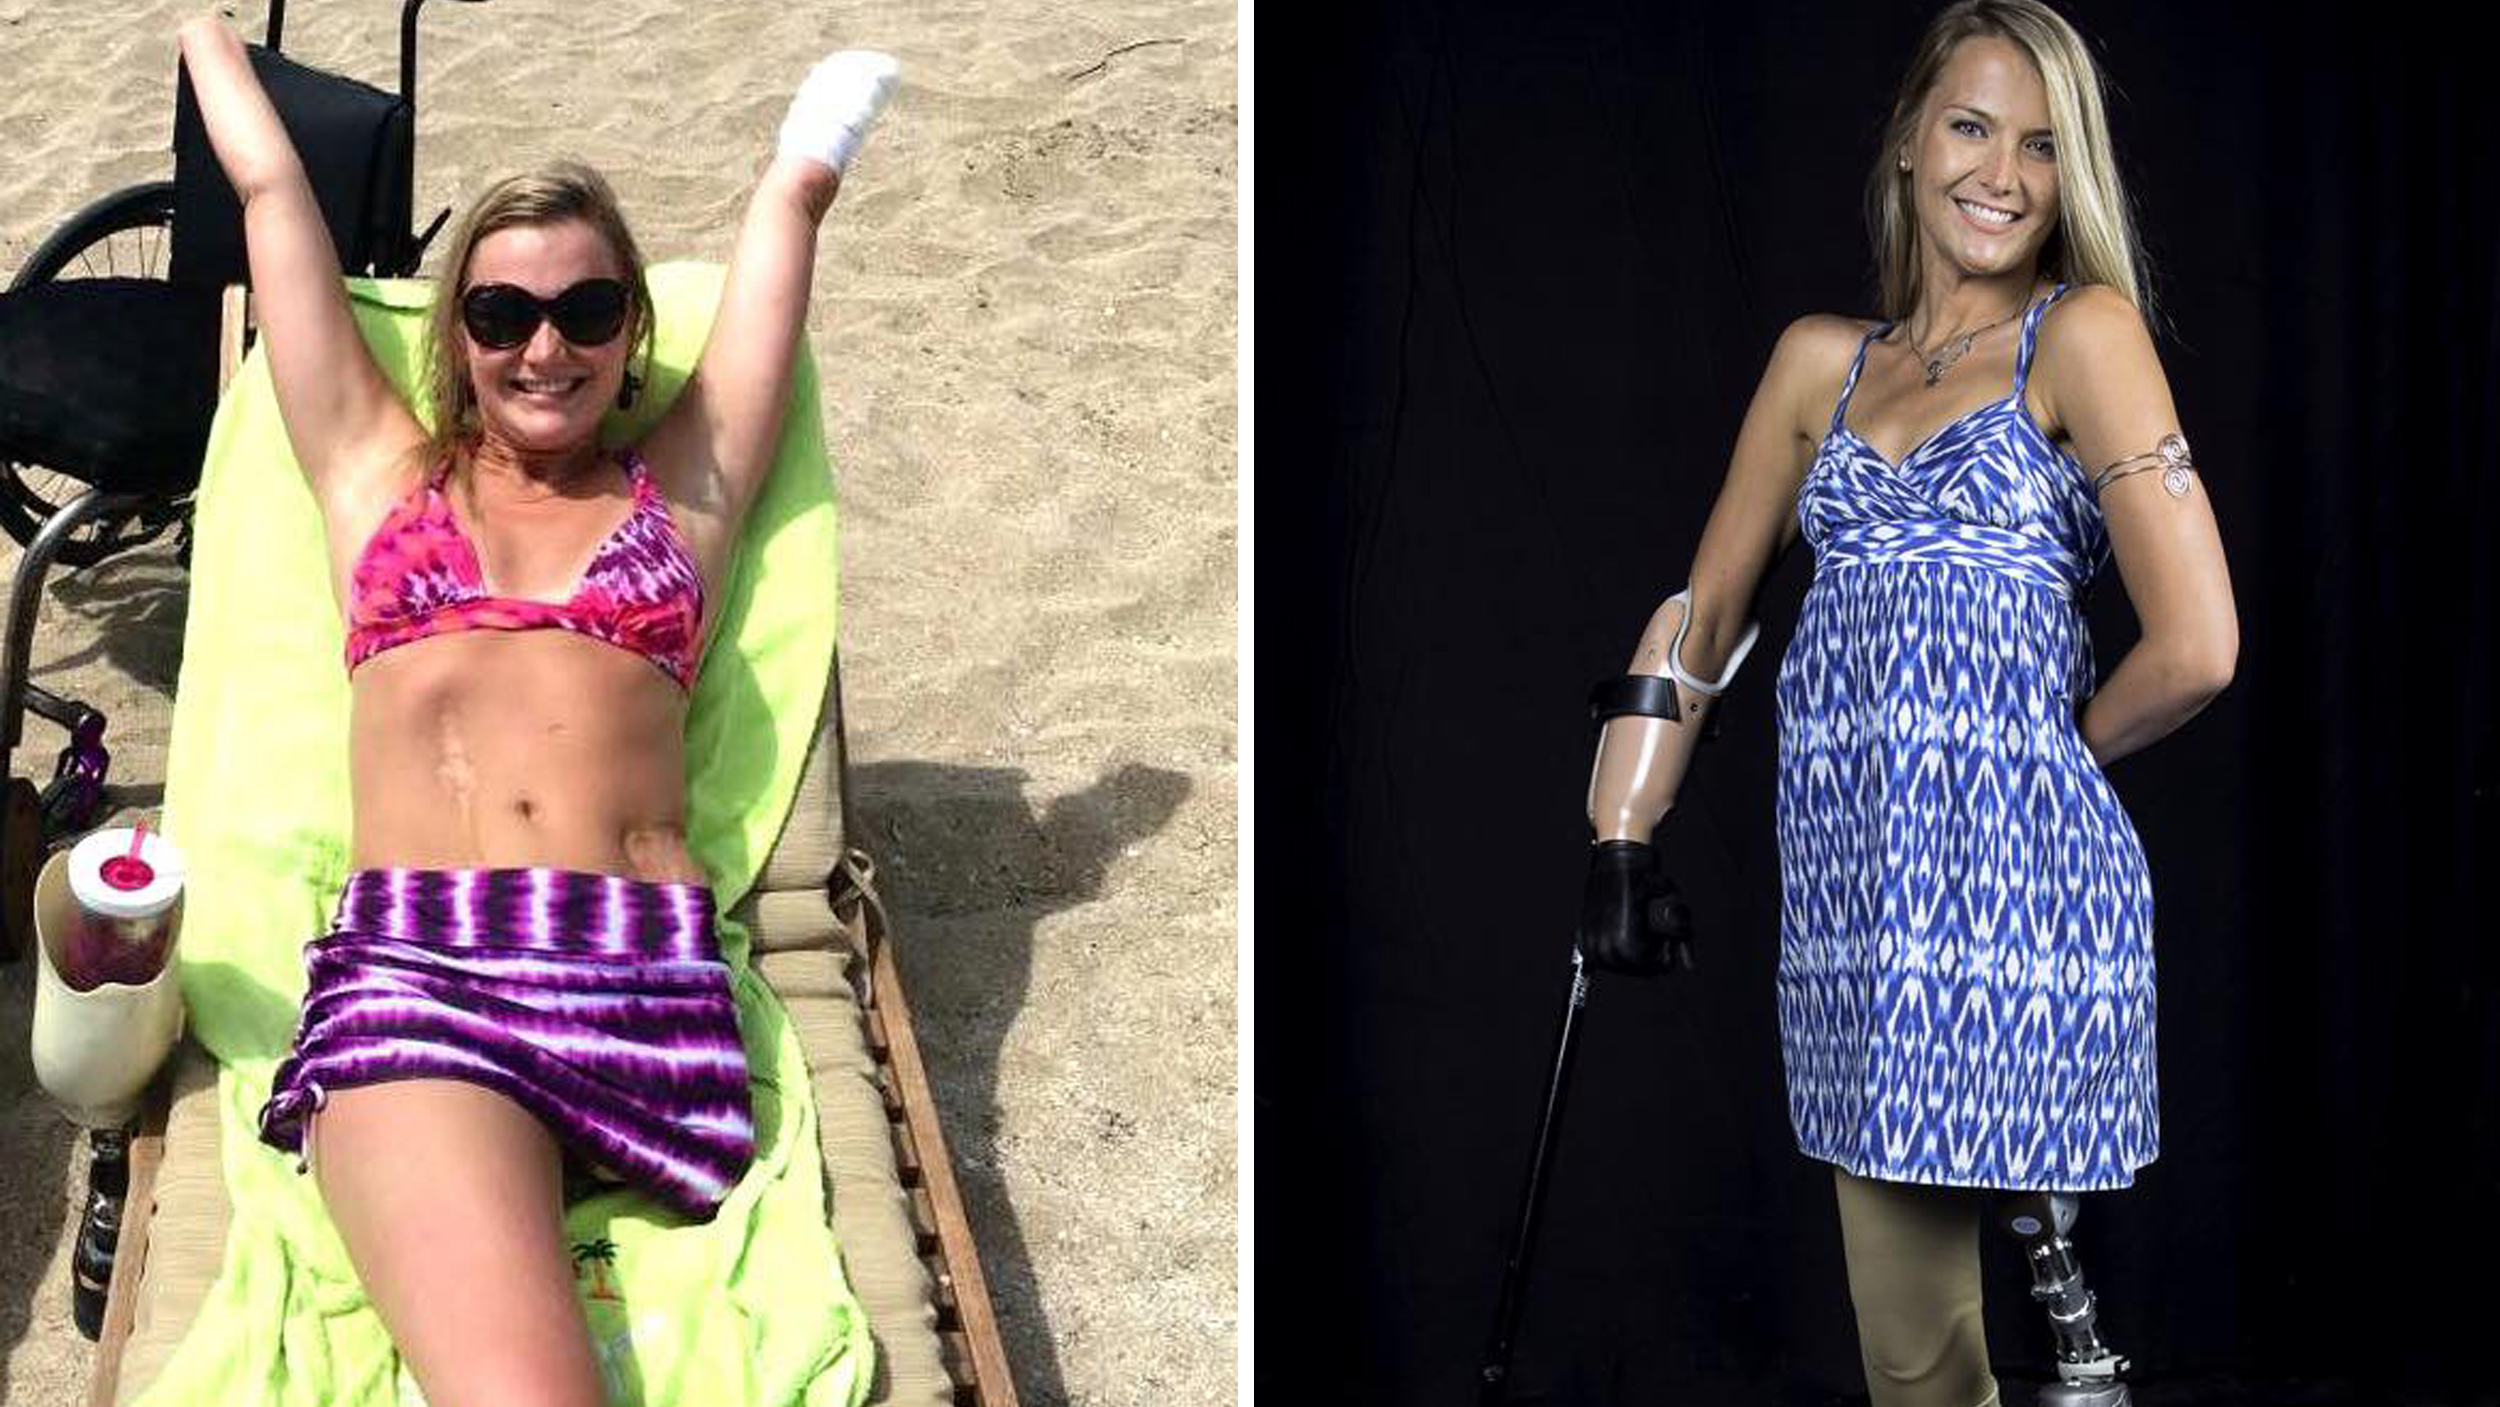 Action On Gun Violence >> Aimee Copeland, flesh-eating bacteria survivor, shares inspiring new photo, message - TODAY.com